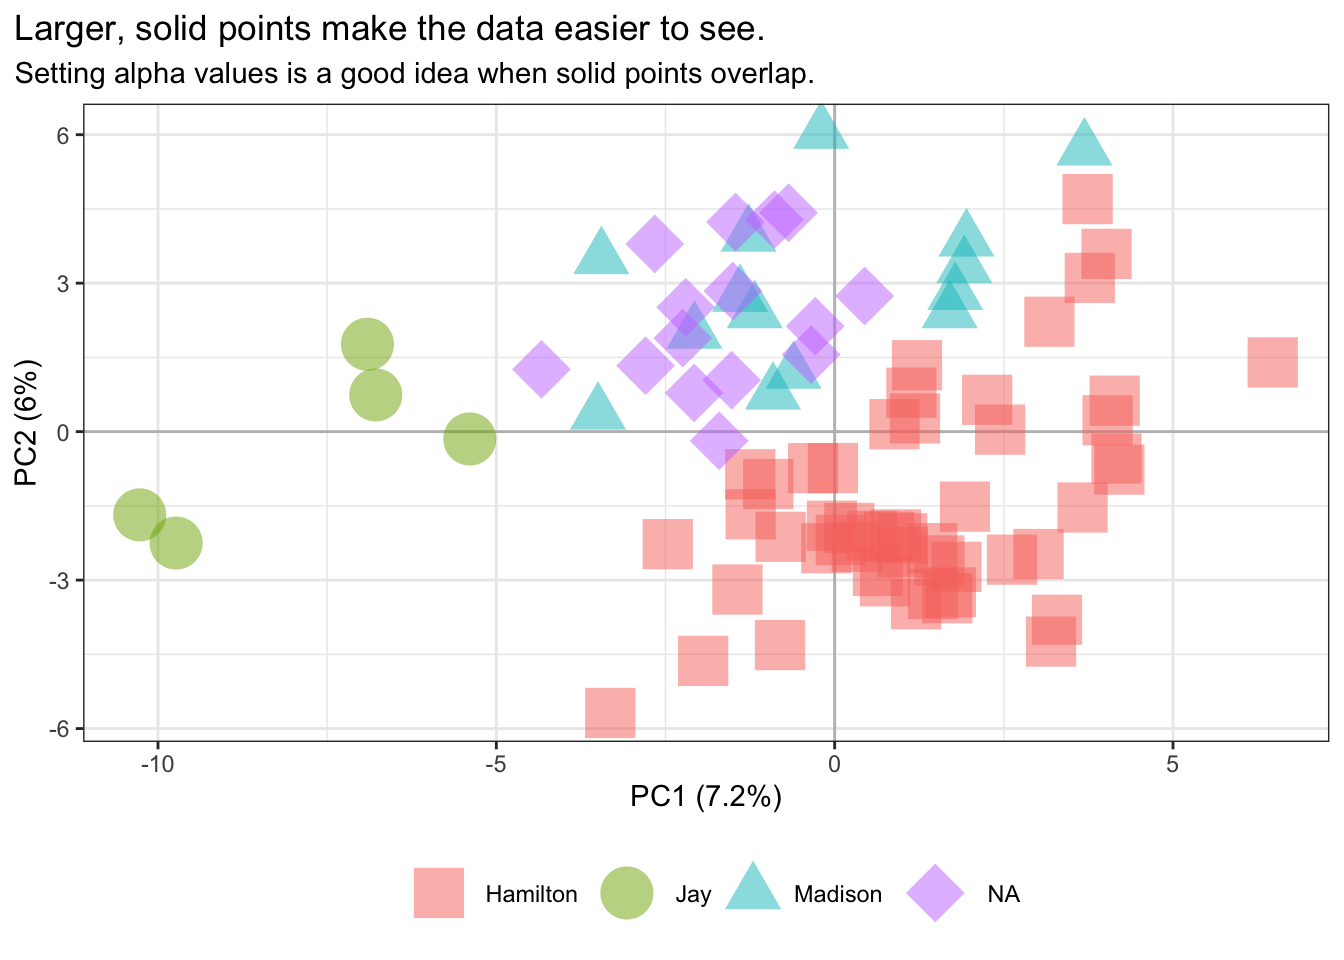 "Setting `viz=pca` rather than the stylo-flavored `viz=""PCR""` or `viz=""PCV""` prepares a minimal visualization of a principal components analysis derived from a correlation matrix. This might be a good setting to use if further customizing the figure by adding refinements provided by ggplot2 functions."